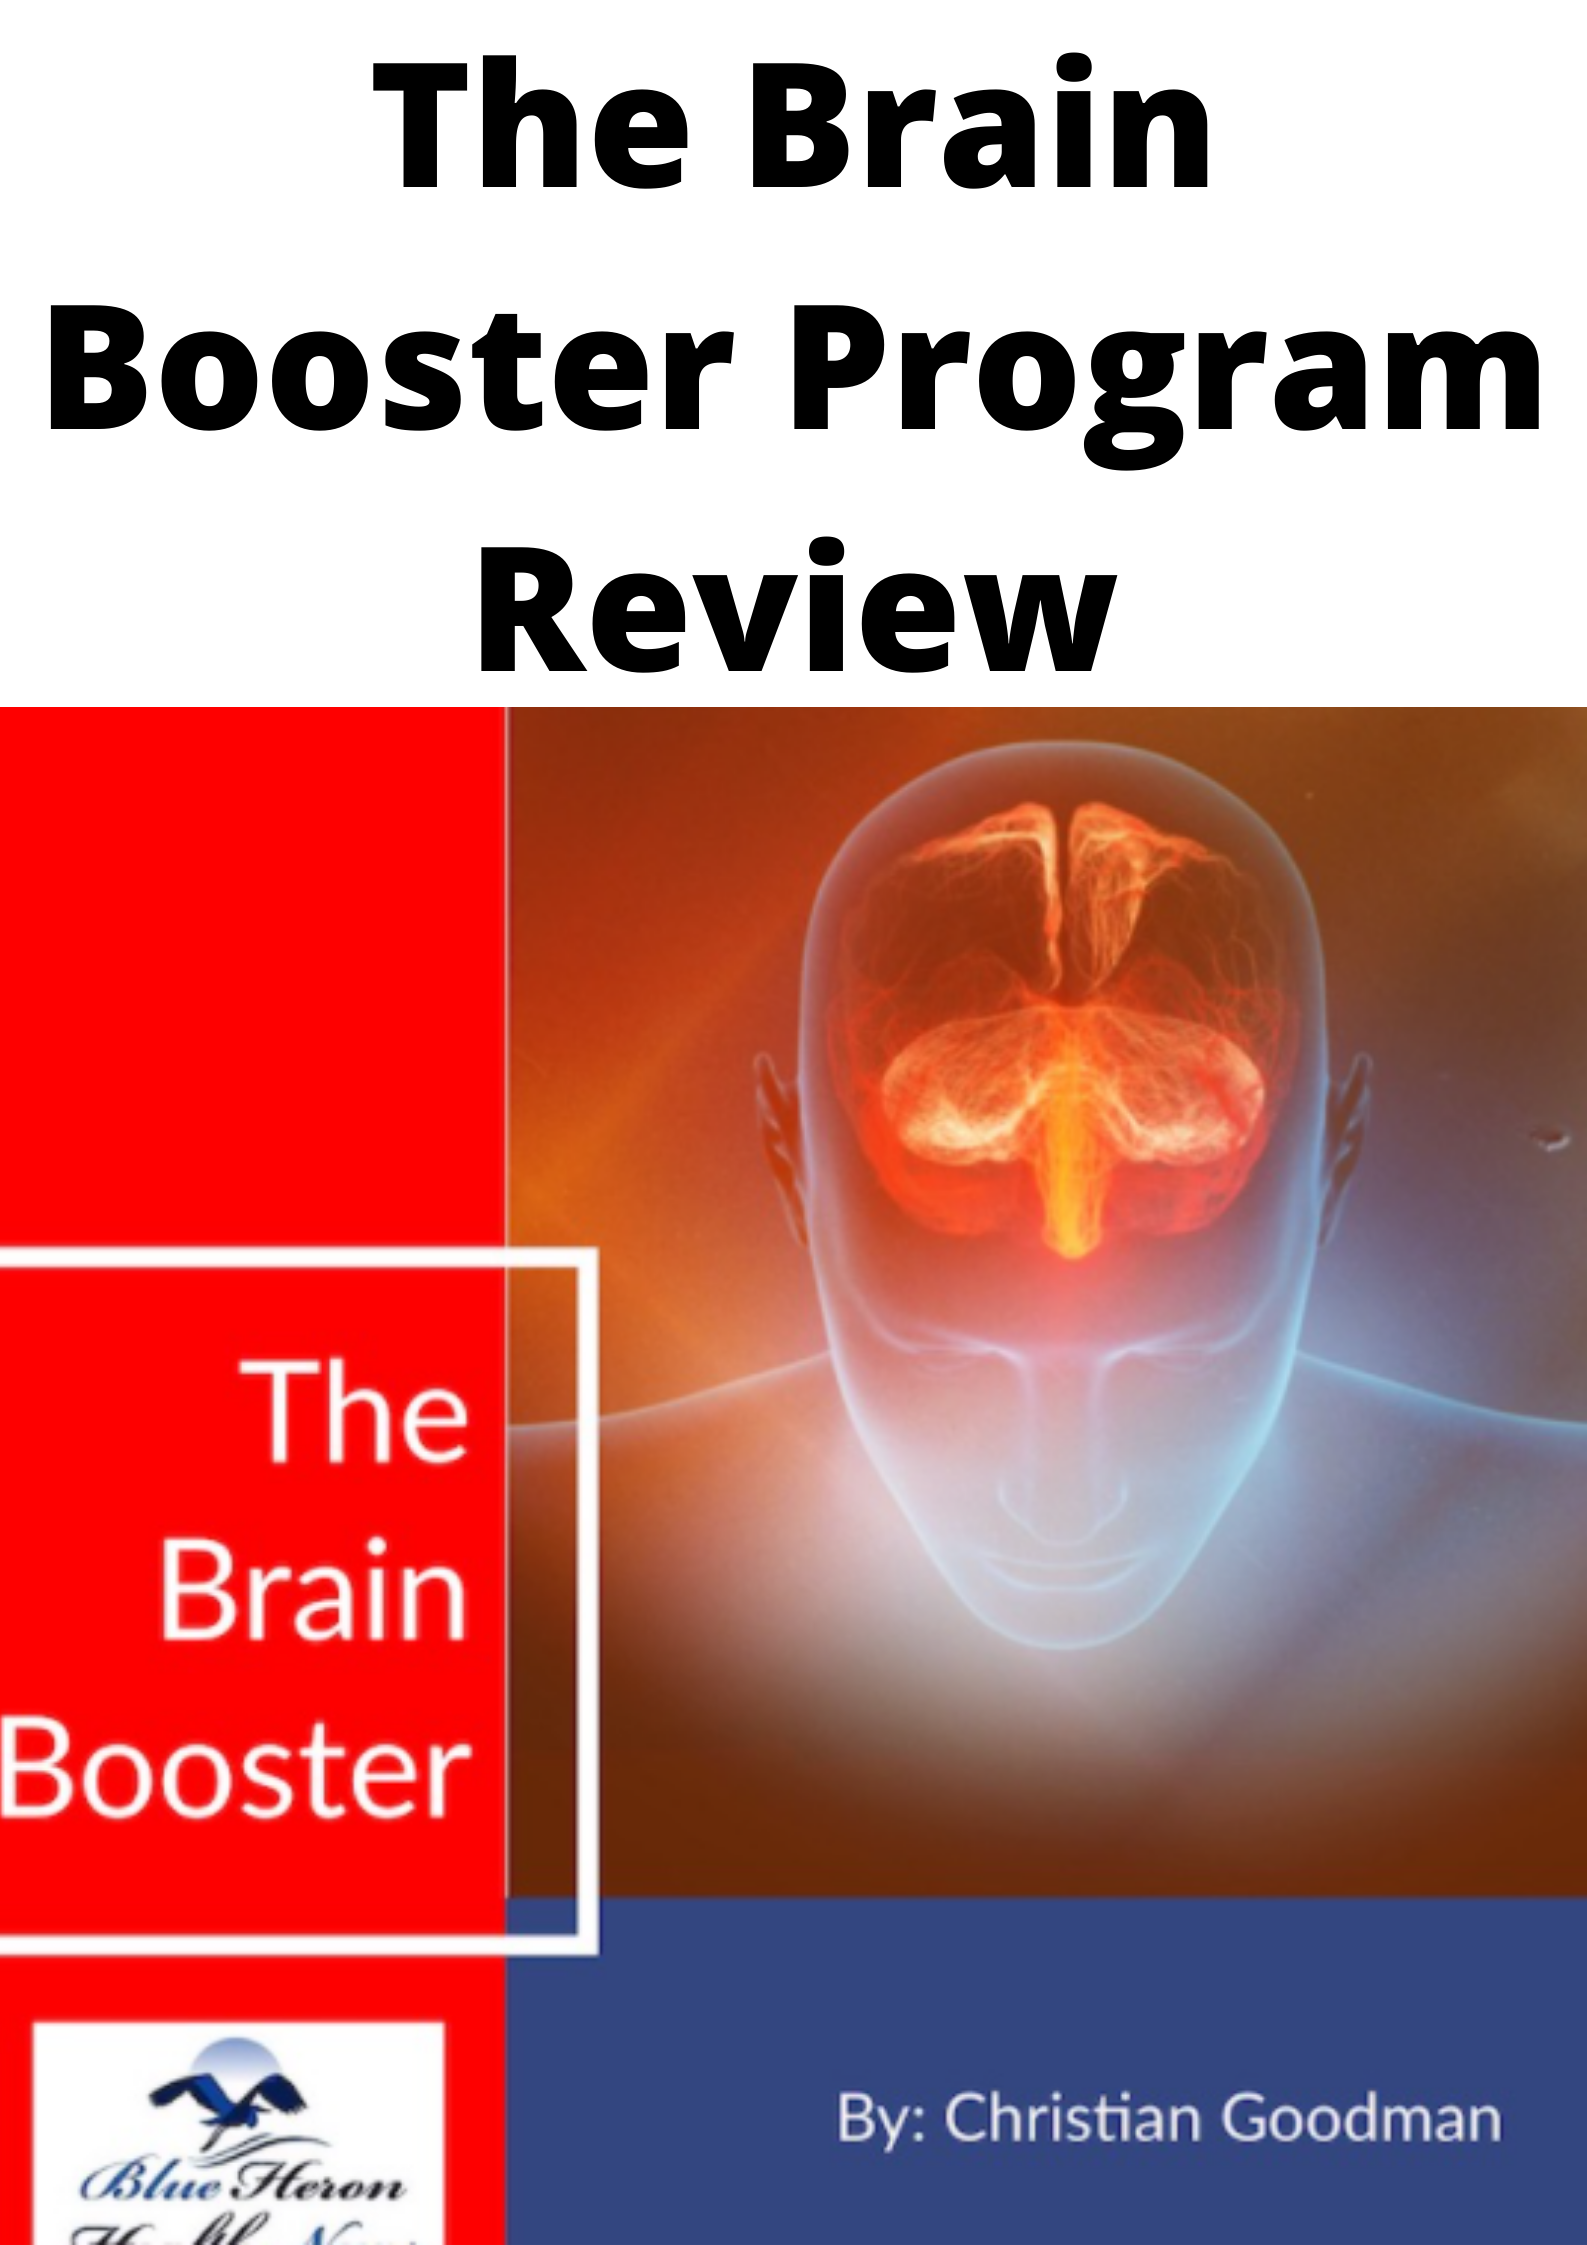 The Brain Booster Program Review